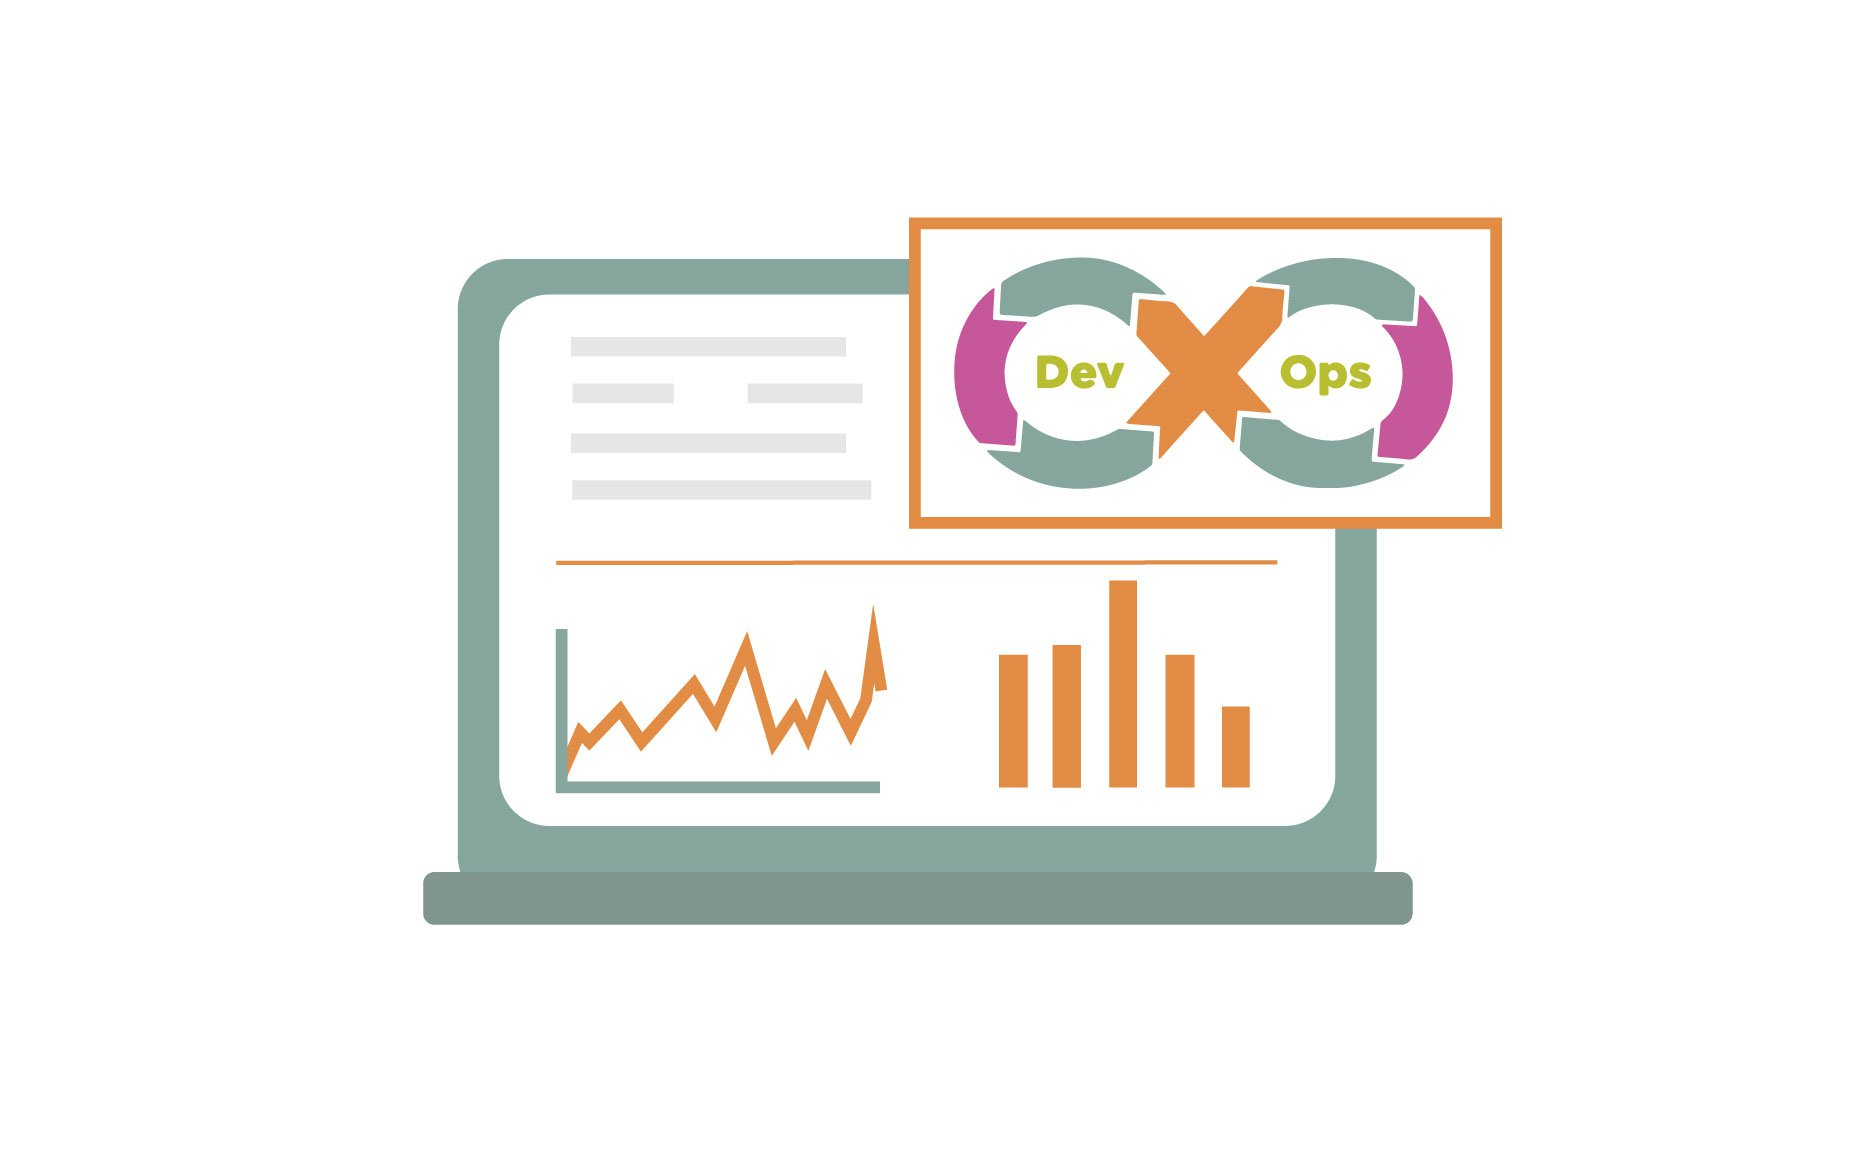 Trainingen Performance testen in DevOps